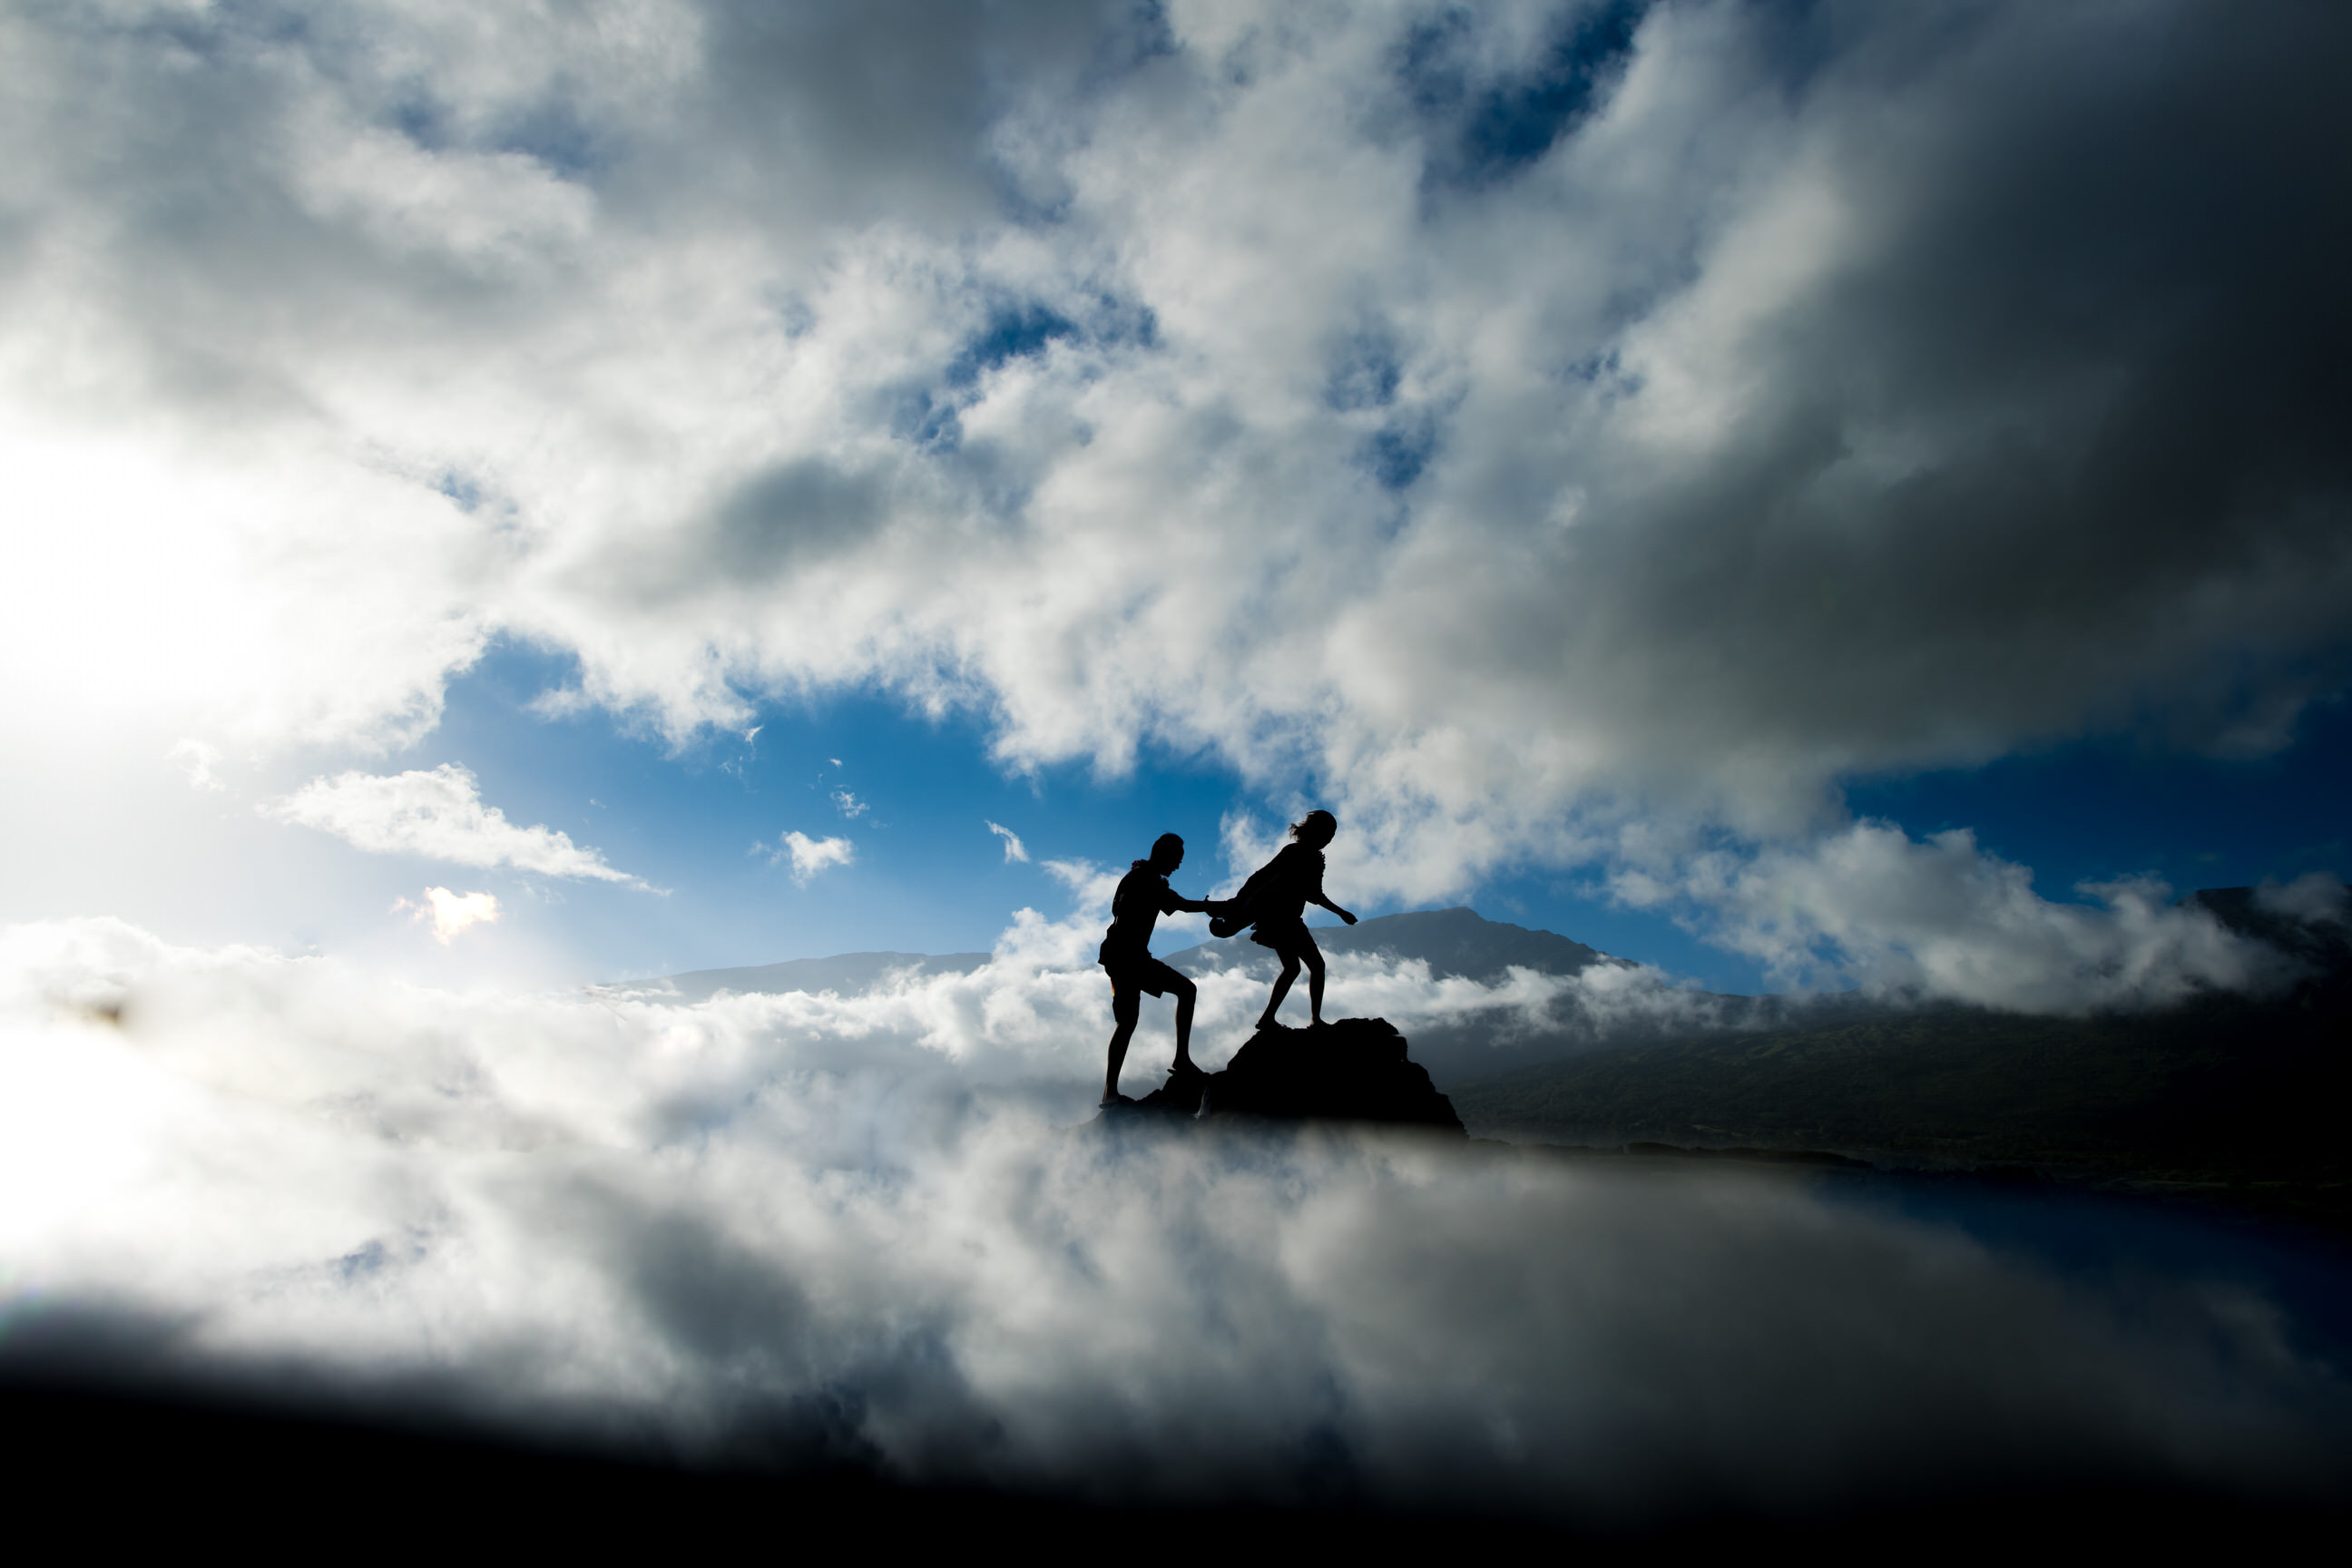 engagement-couple-on-mountain-summit-against-clouds-angela-nelson-photography.